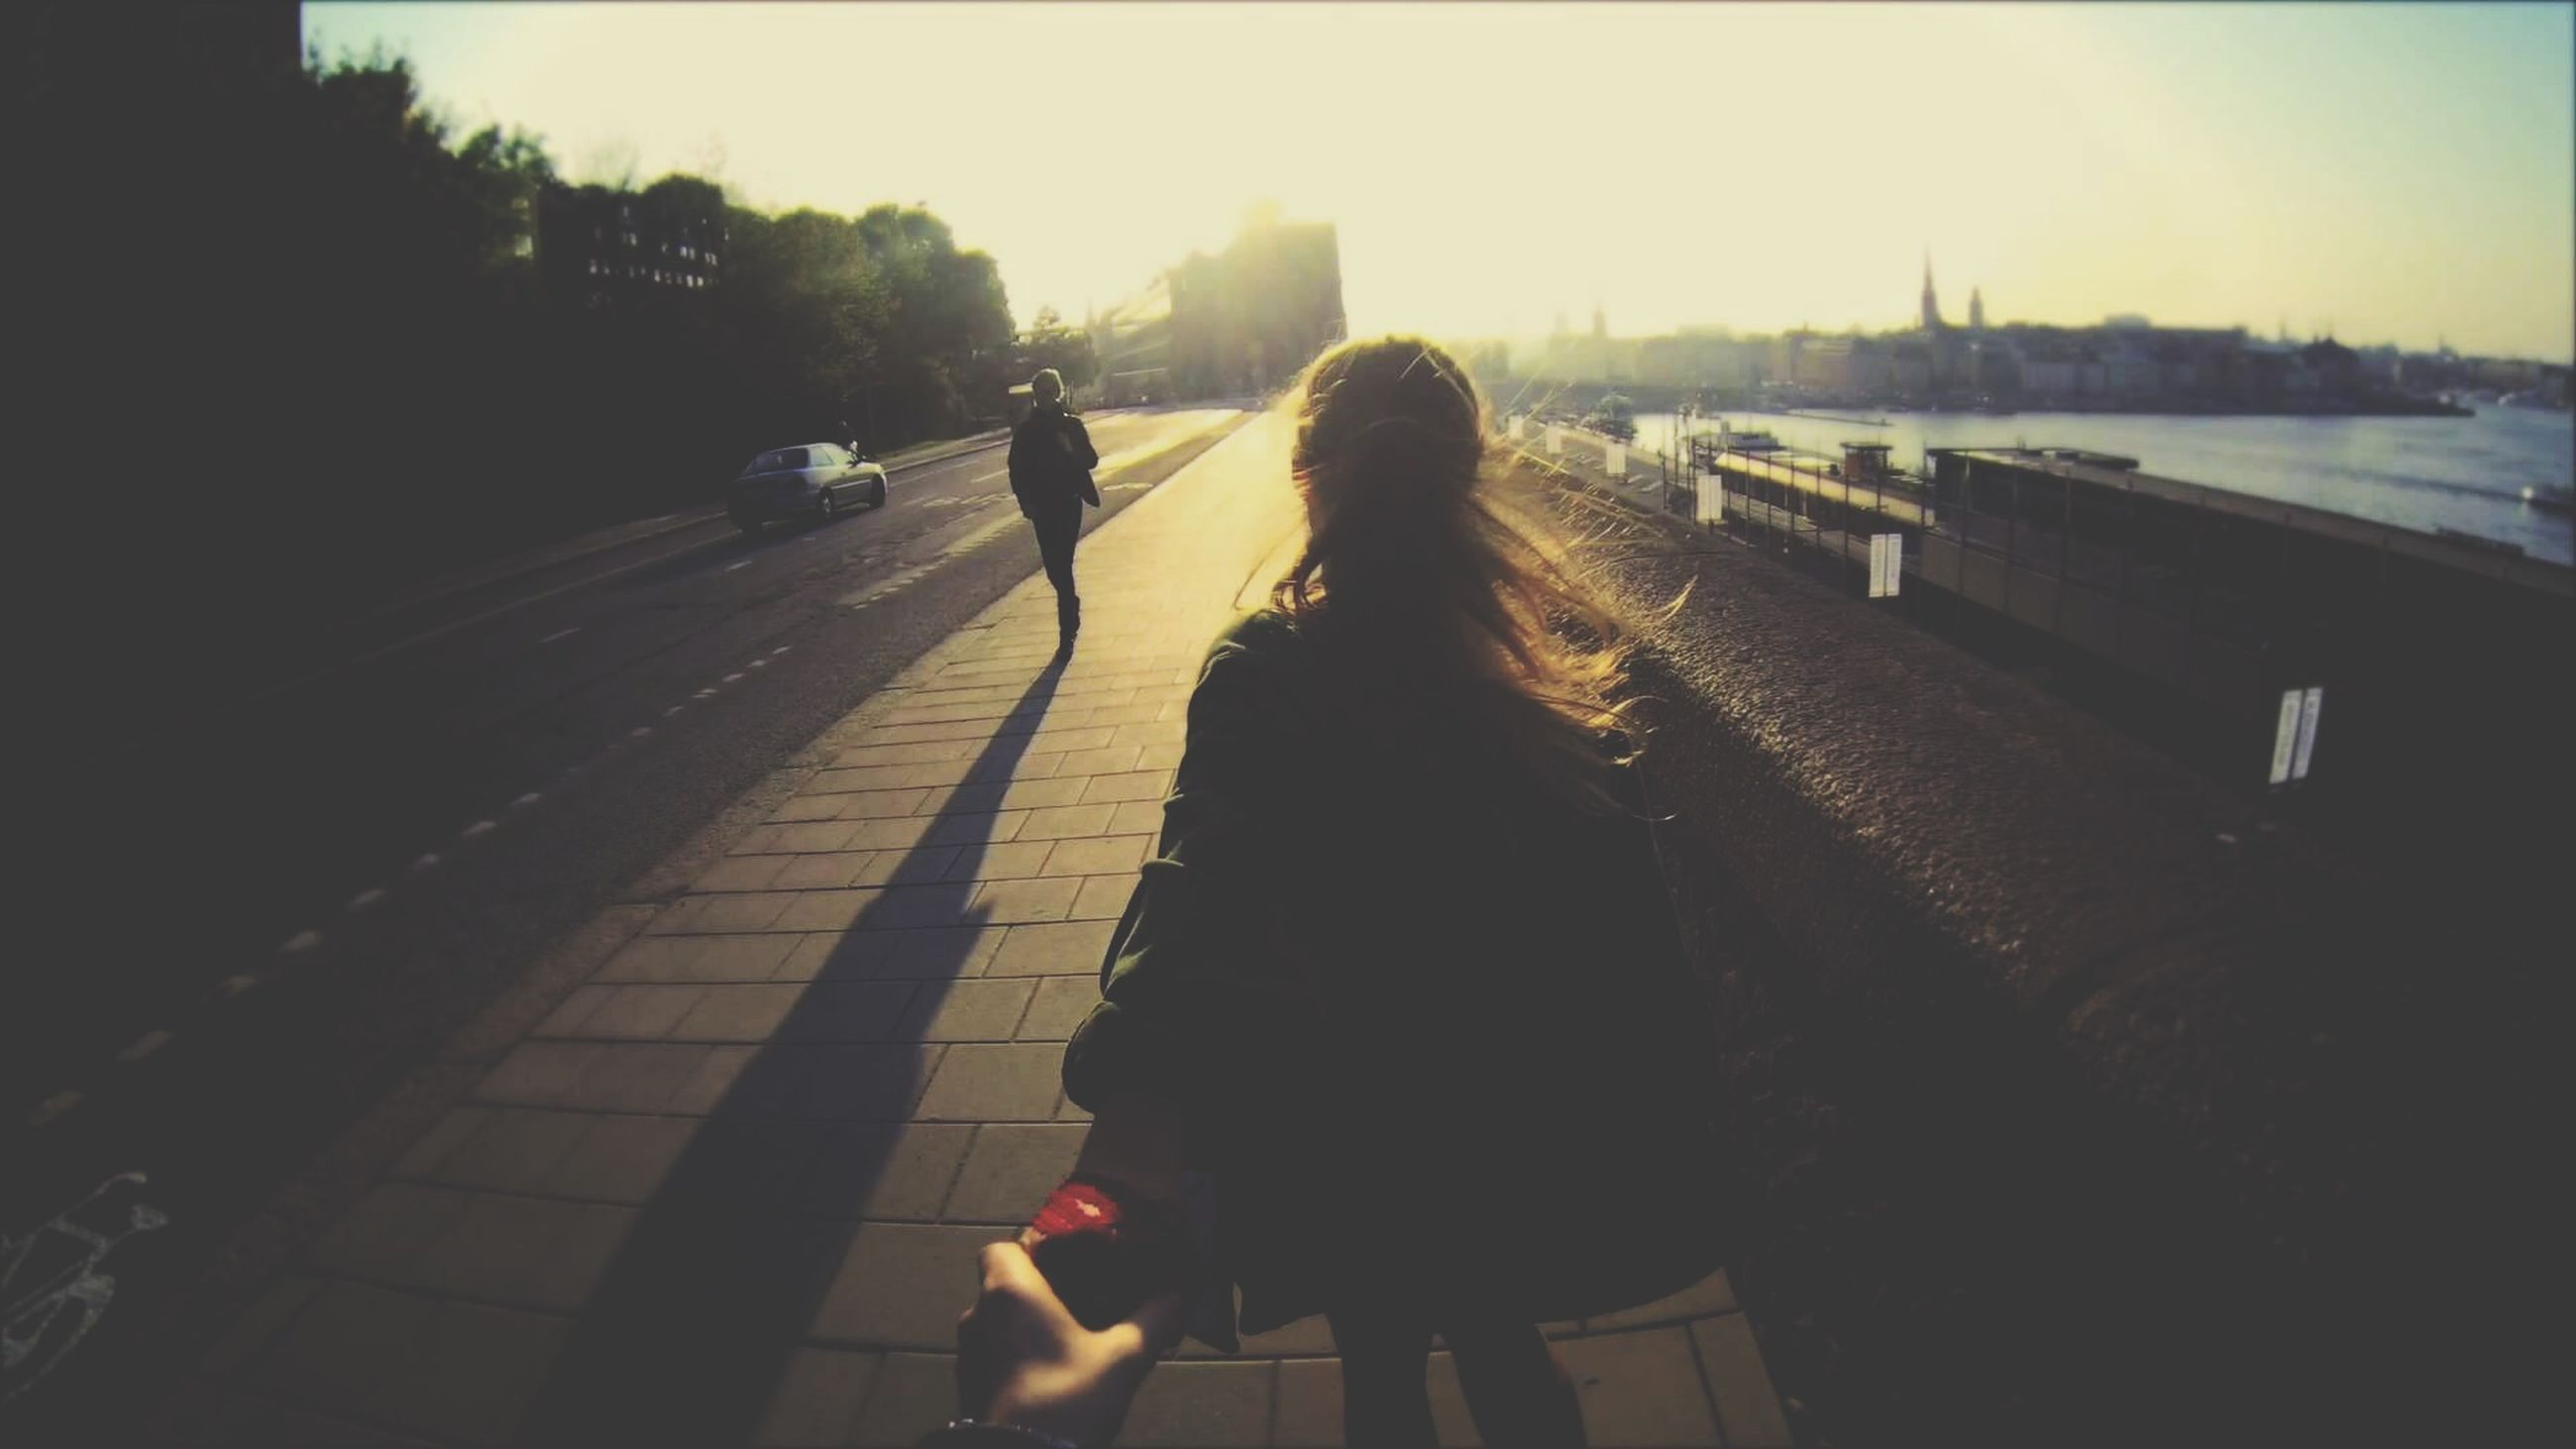 lifestyles, rear view, leisure activity, walking, full length, person, clear sky, silhouette, sunlight, togetherness, men, shadow, the way forward, street, standing, bonding, city life